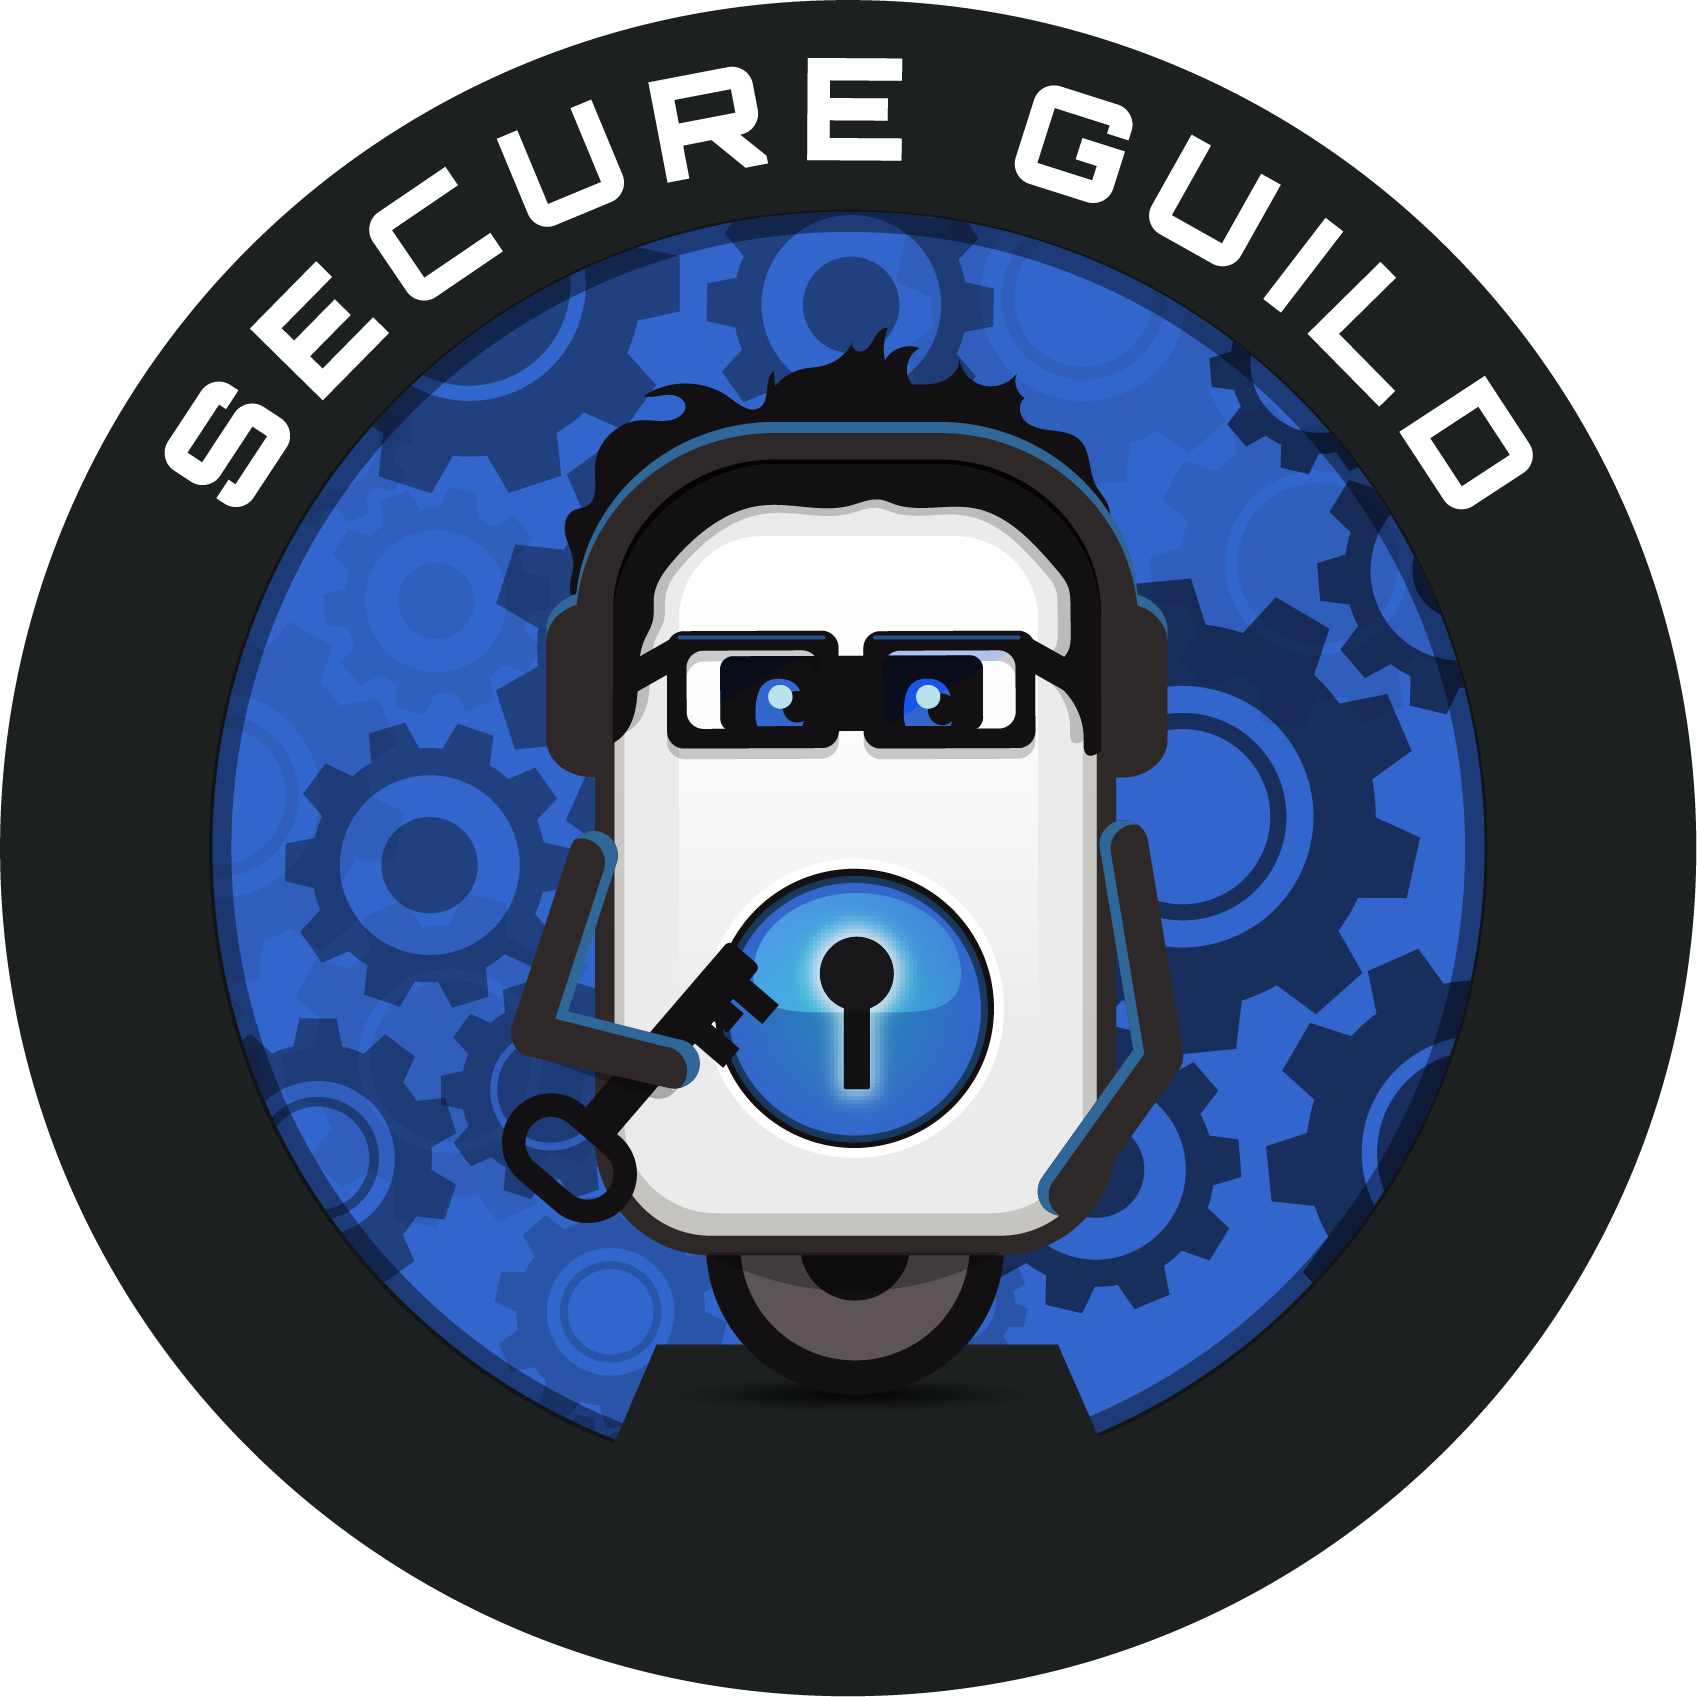 Round Secure Guild Logo